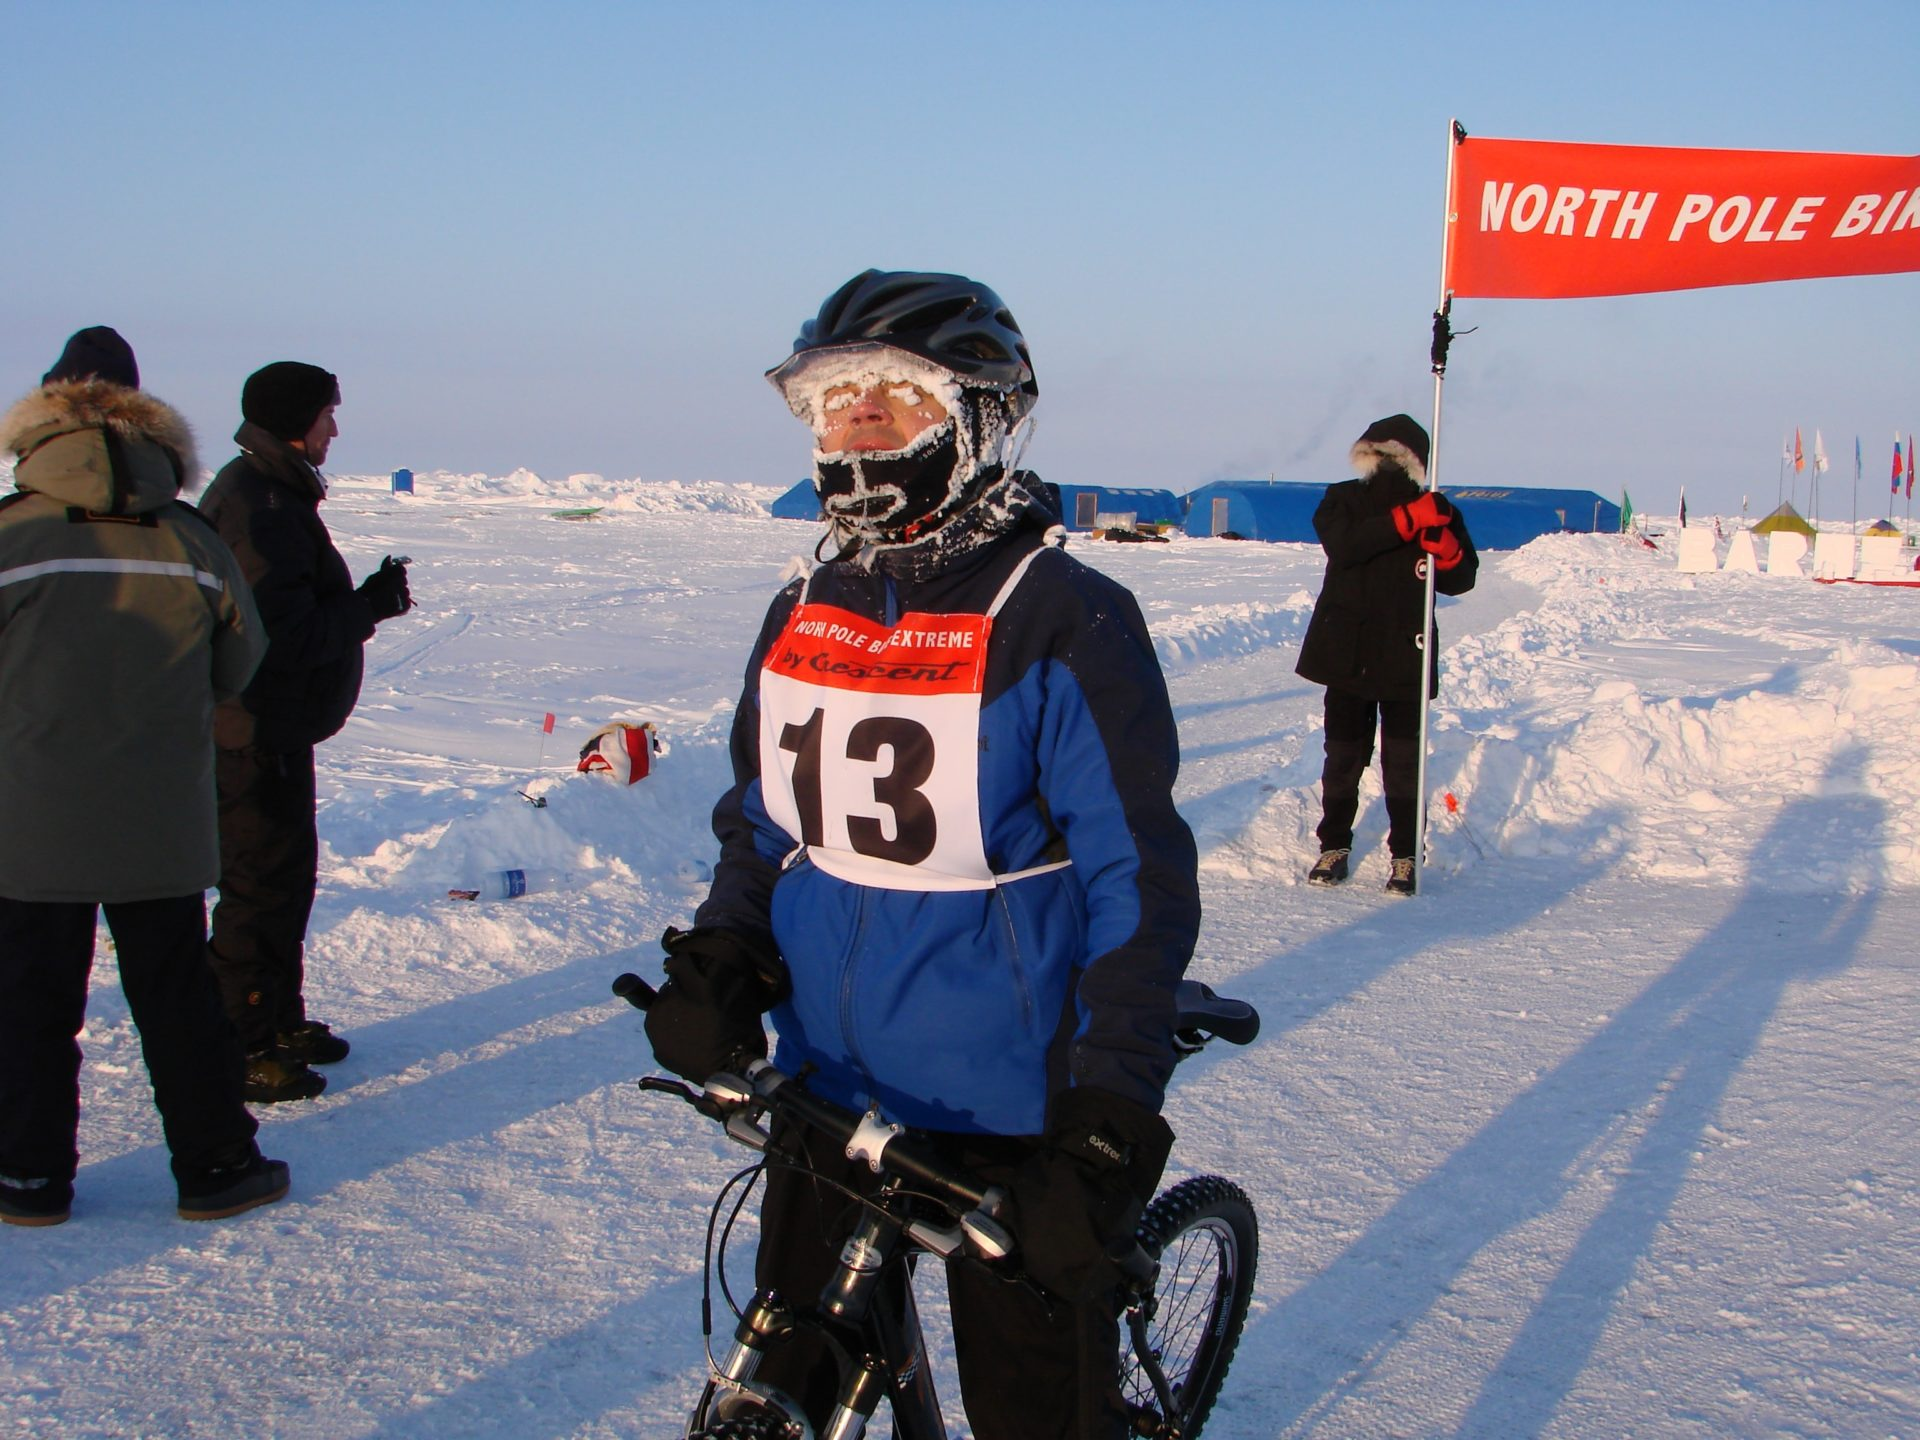 Jukka about to bike a marathon on the North Pole